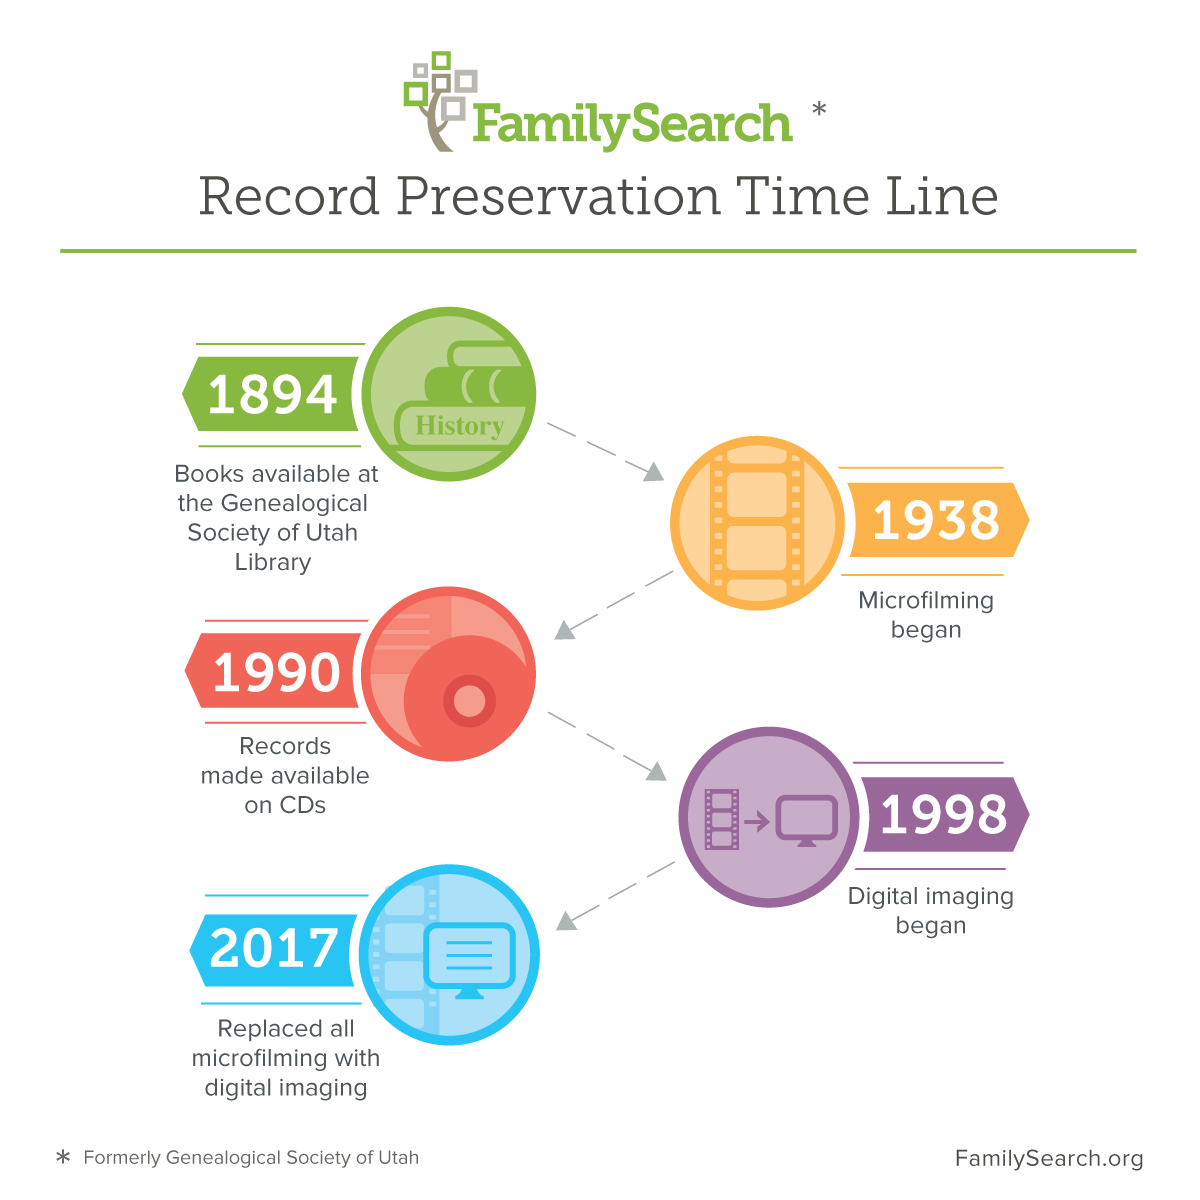 The history of FamilySearch's records preservation efforts beginning in 1894.